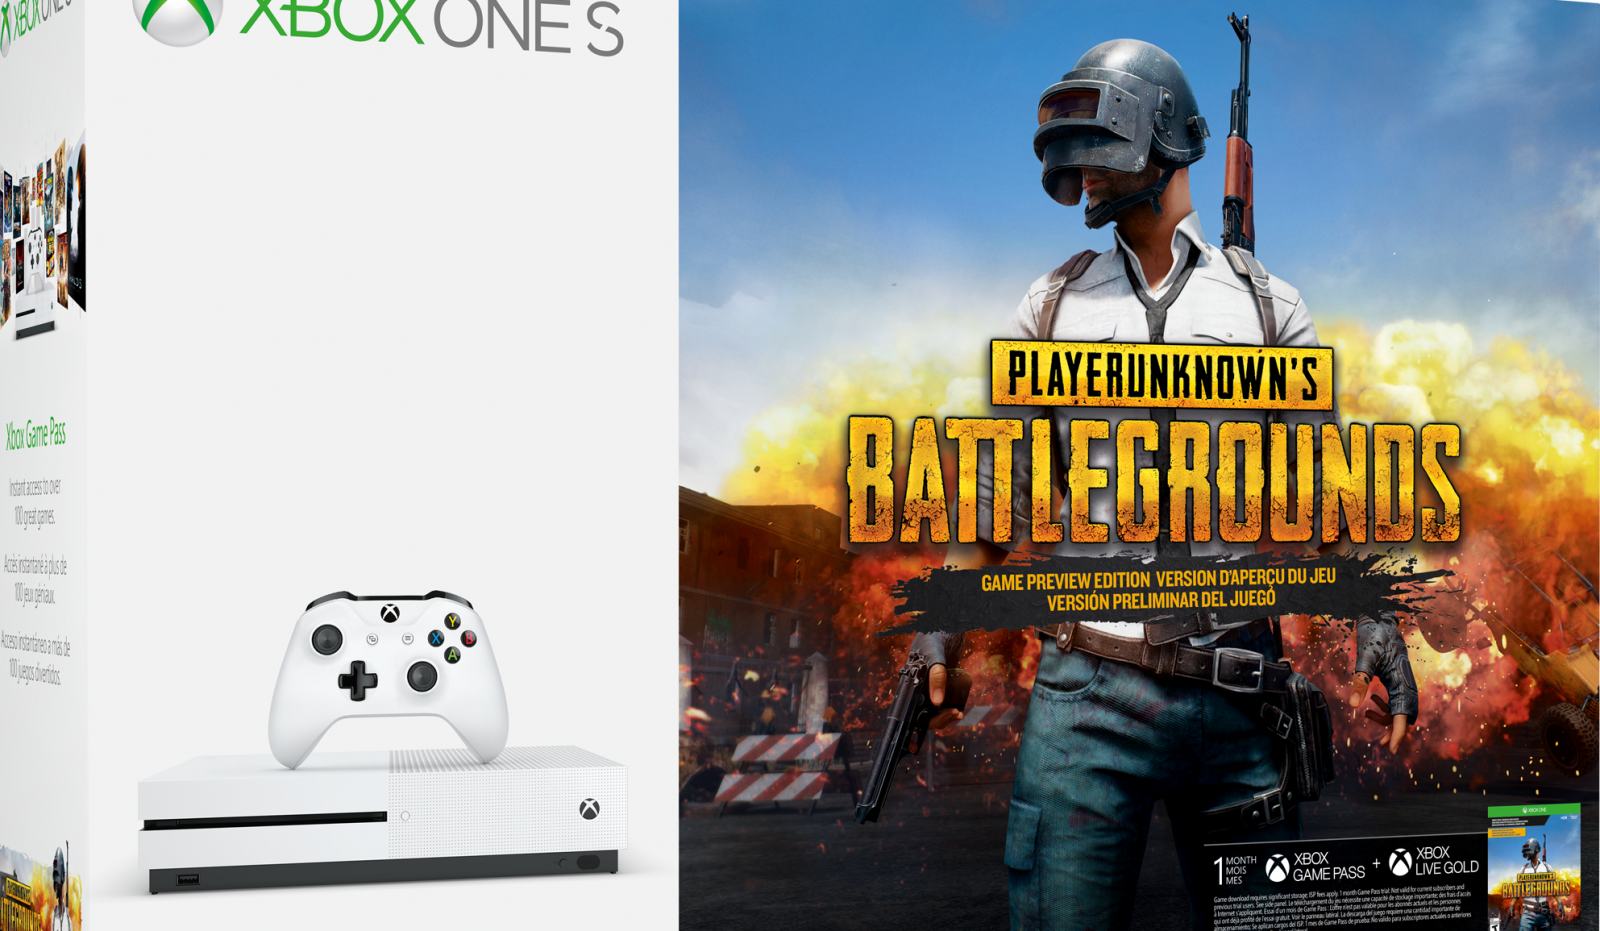 Gear Up For The Battle Royale With A New Xbox One S Pubg Bundle